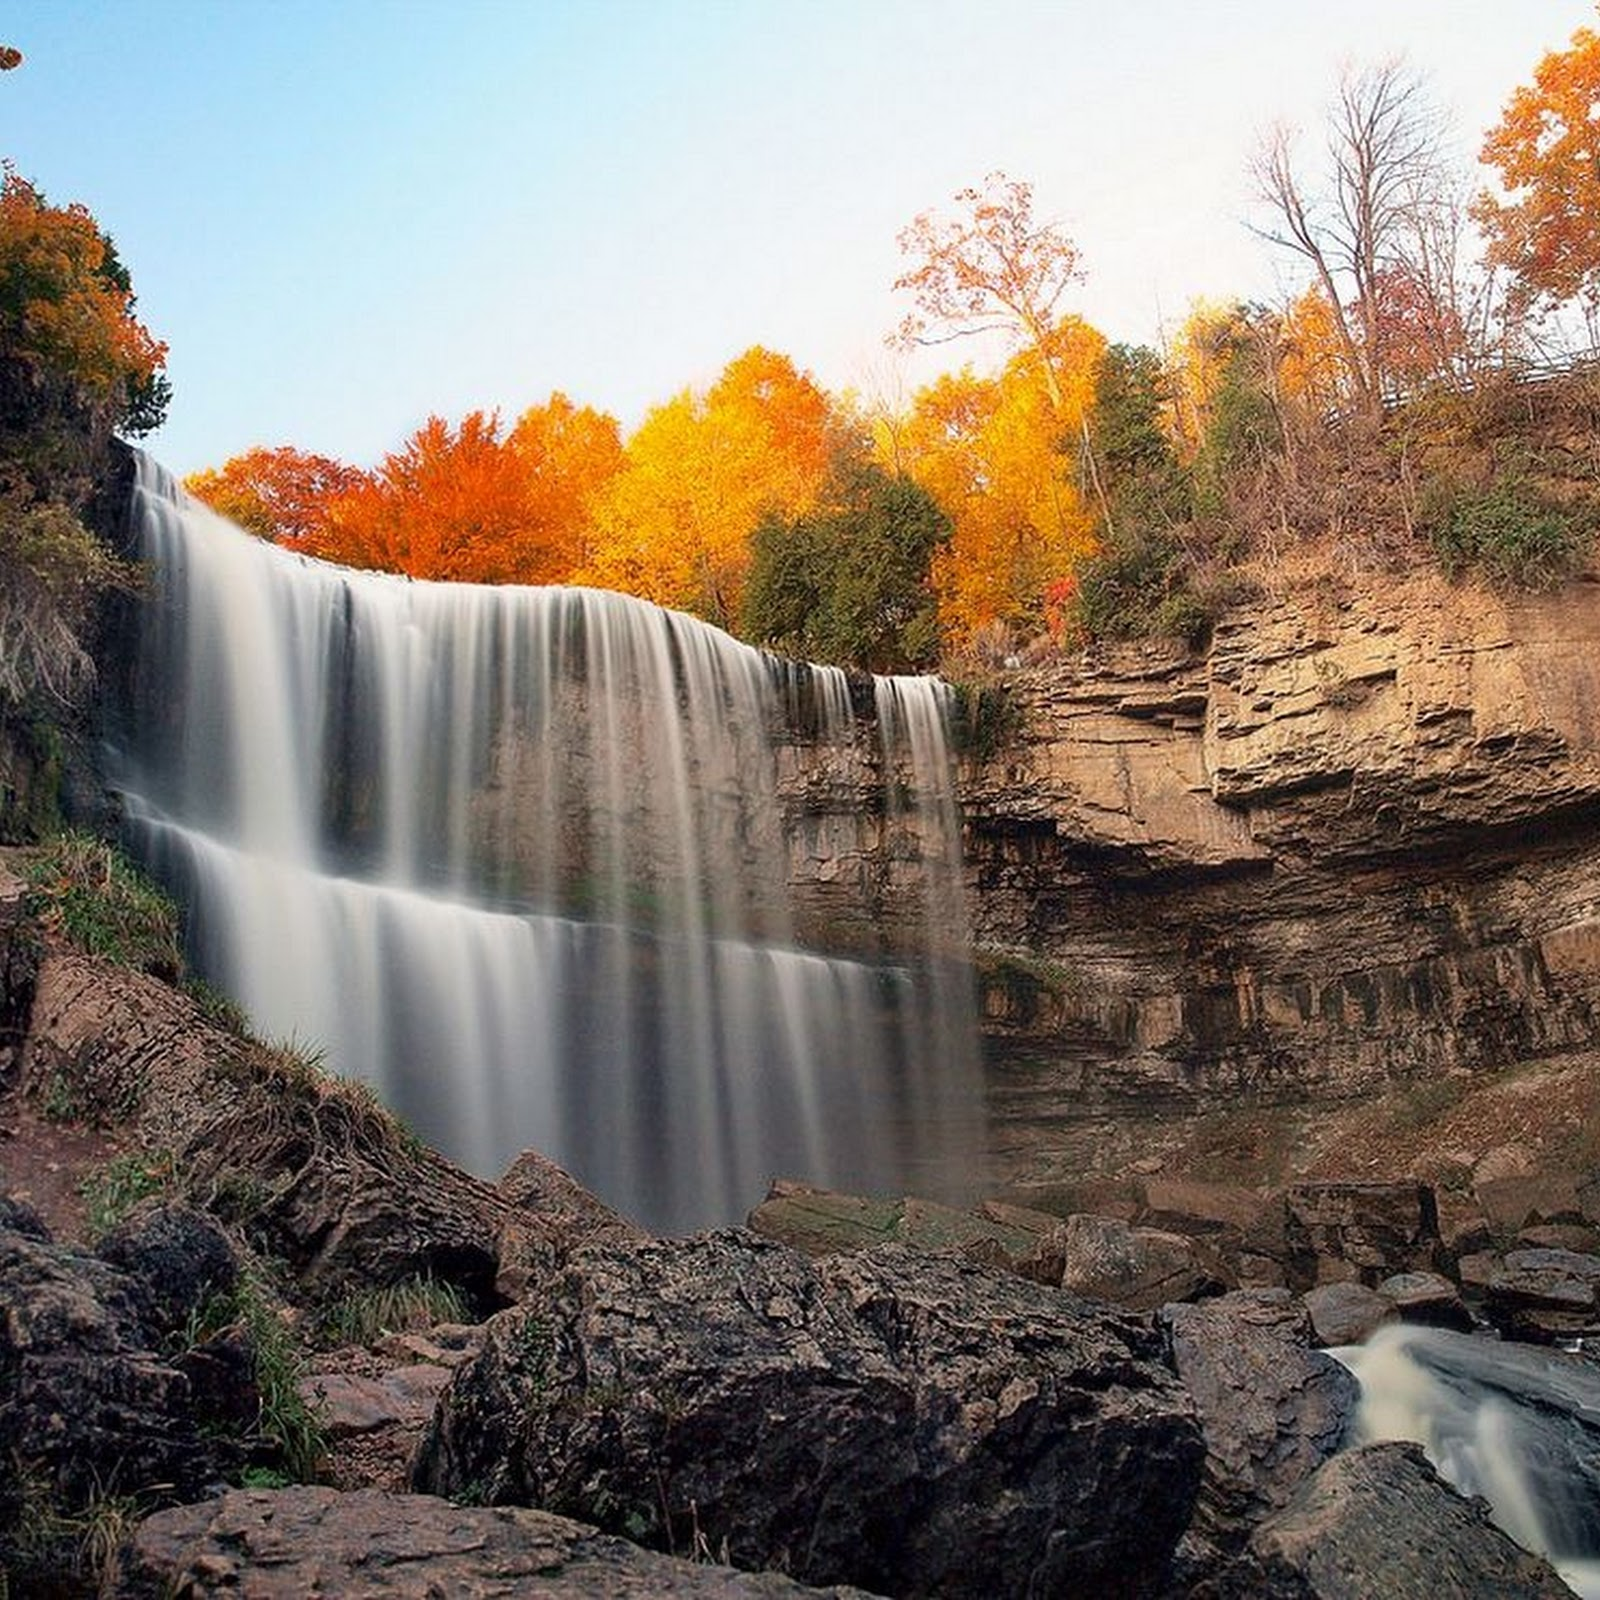 Hamilton, The Waterfall Capital of The World